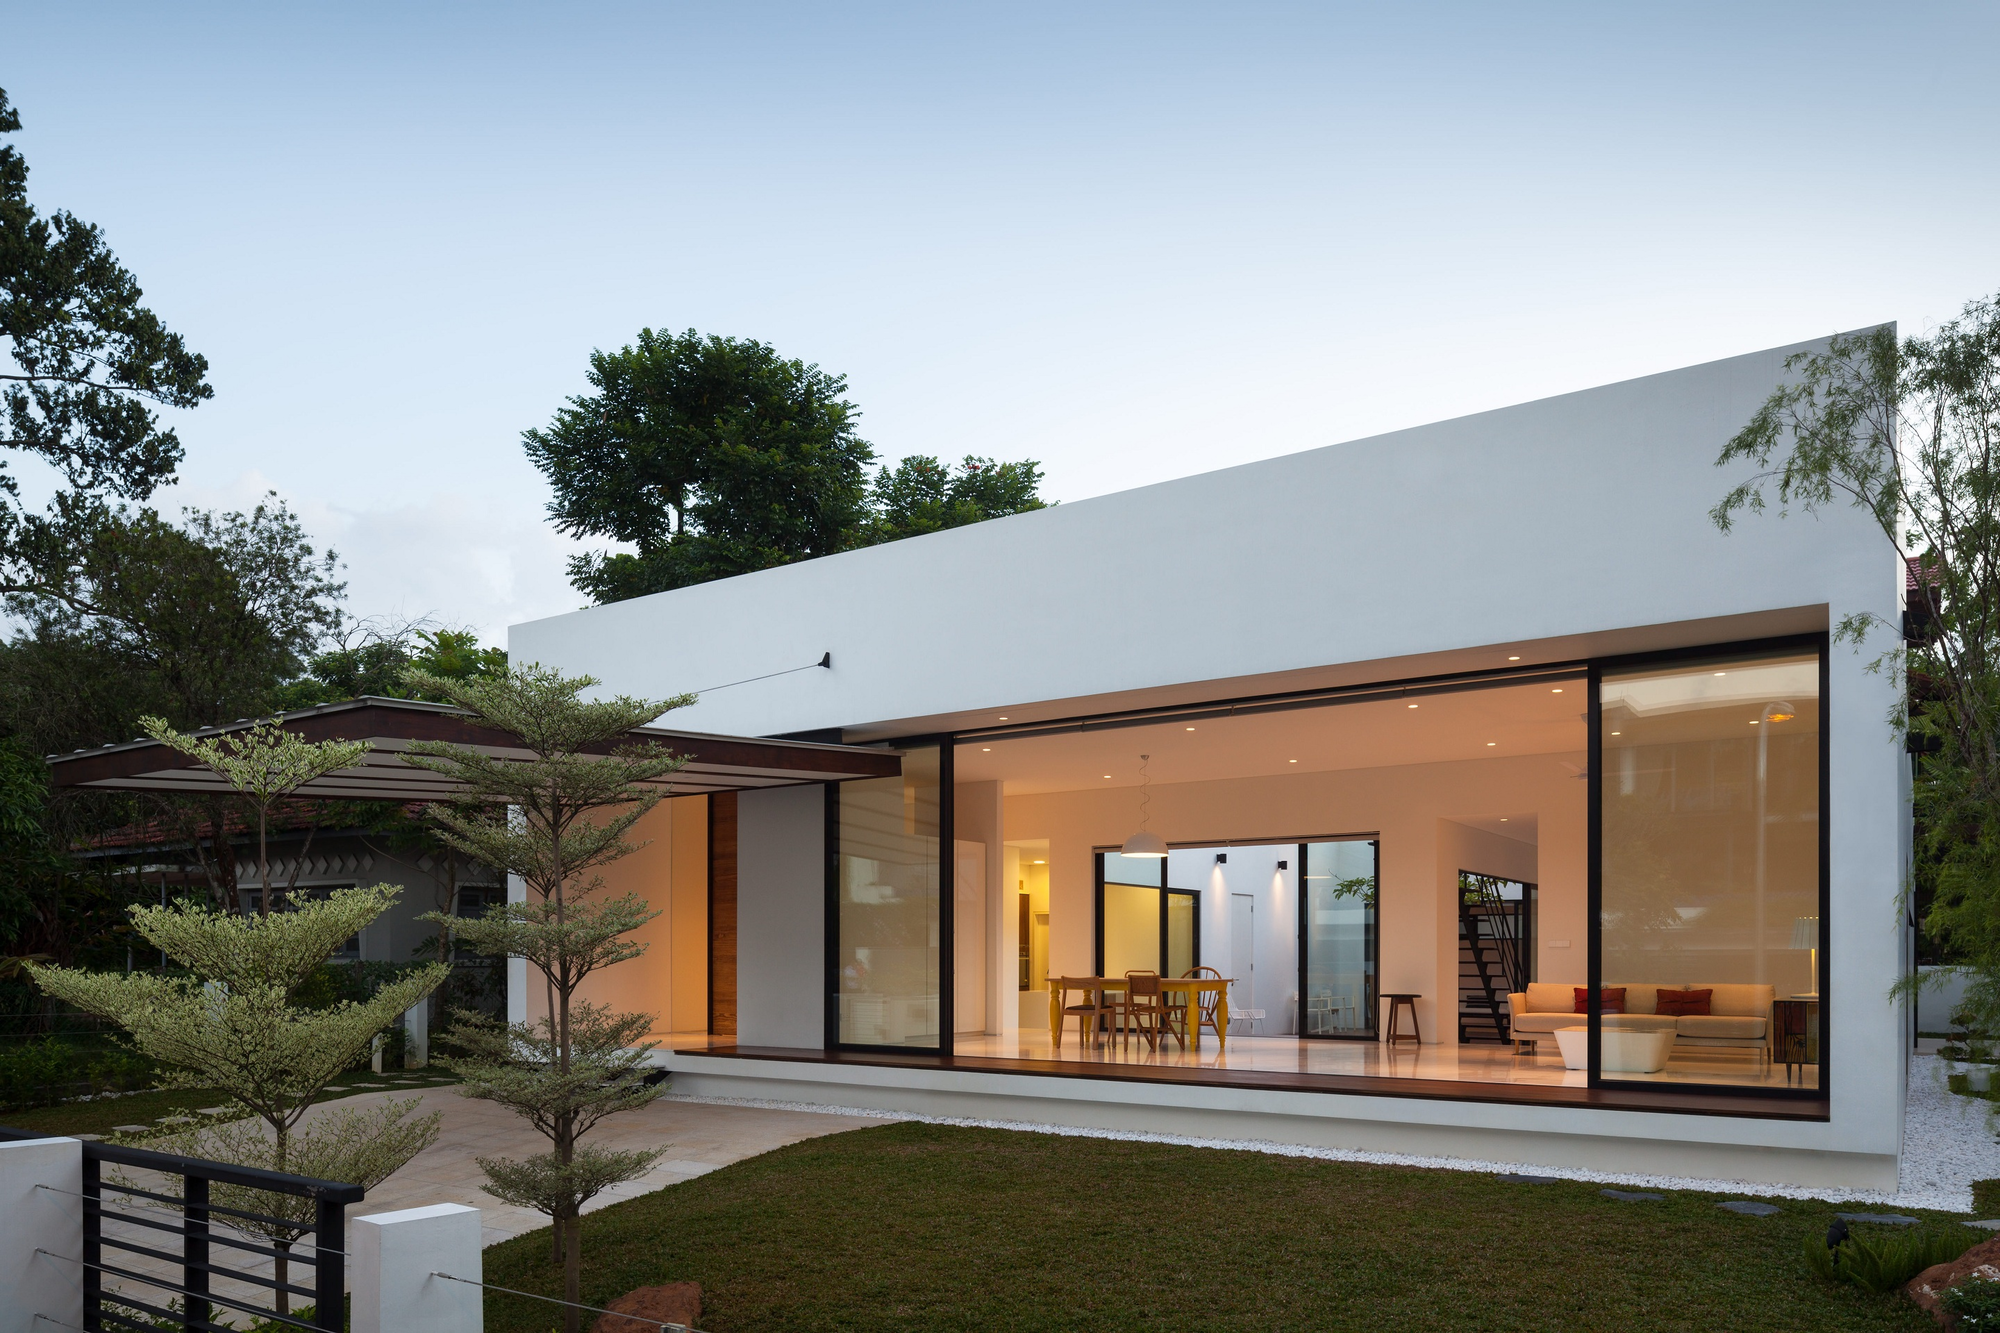 Mandai Courtyard House / Atelier M+A, © Robert Such